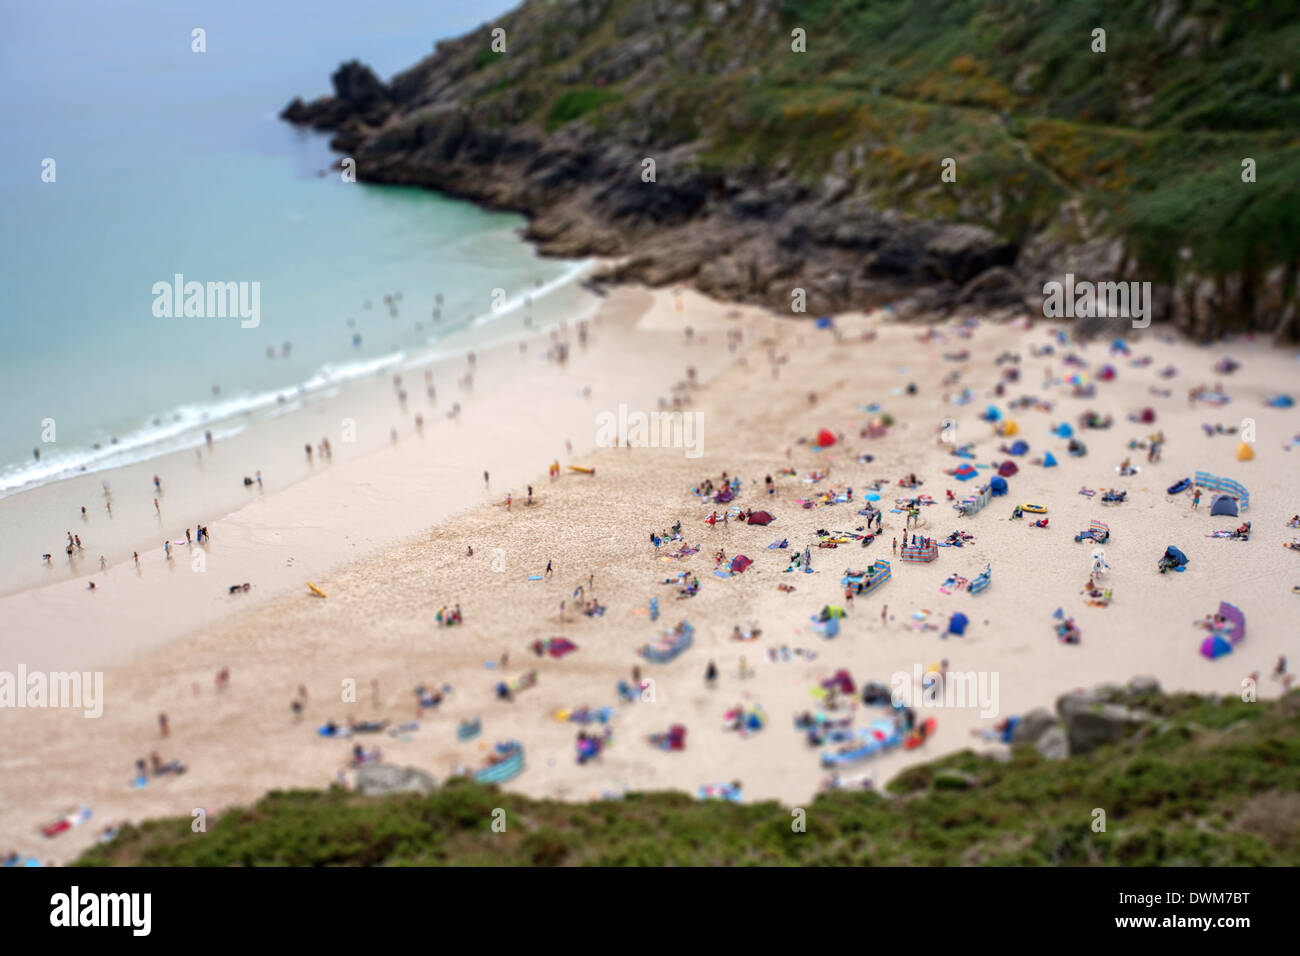 Holiday makers on the beach Porthcurno, Cornwall, UK Tilt shift effect - Stock Image